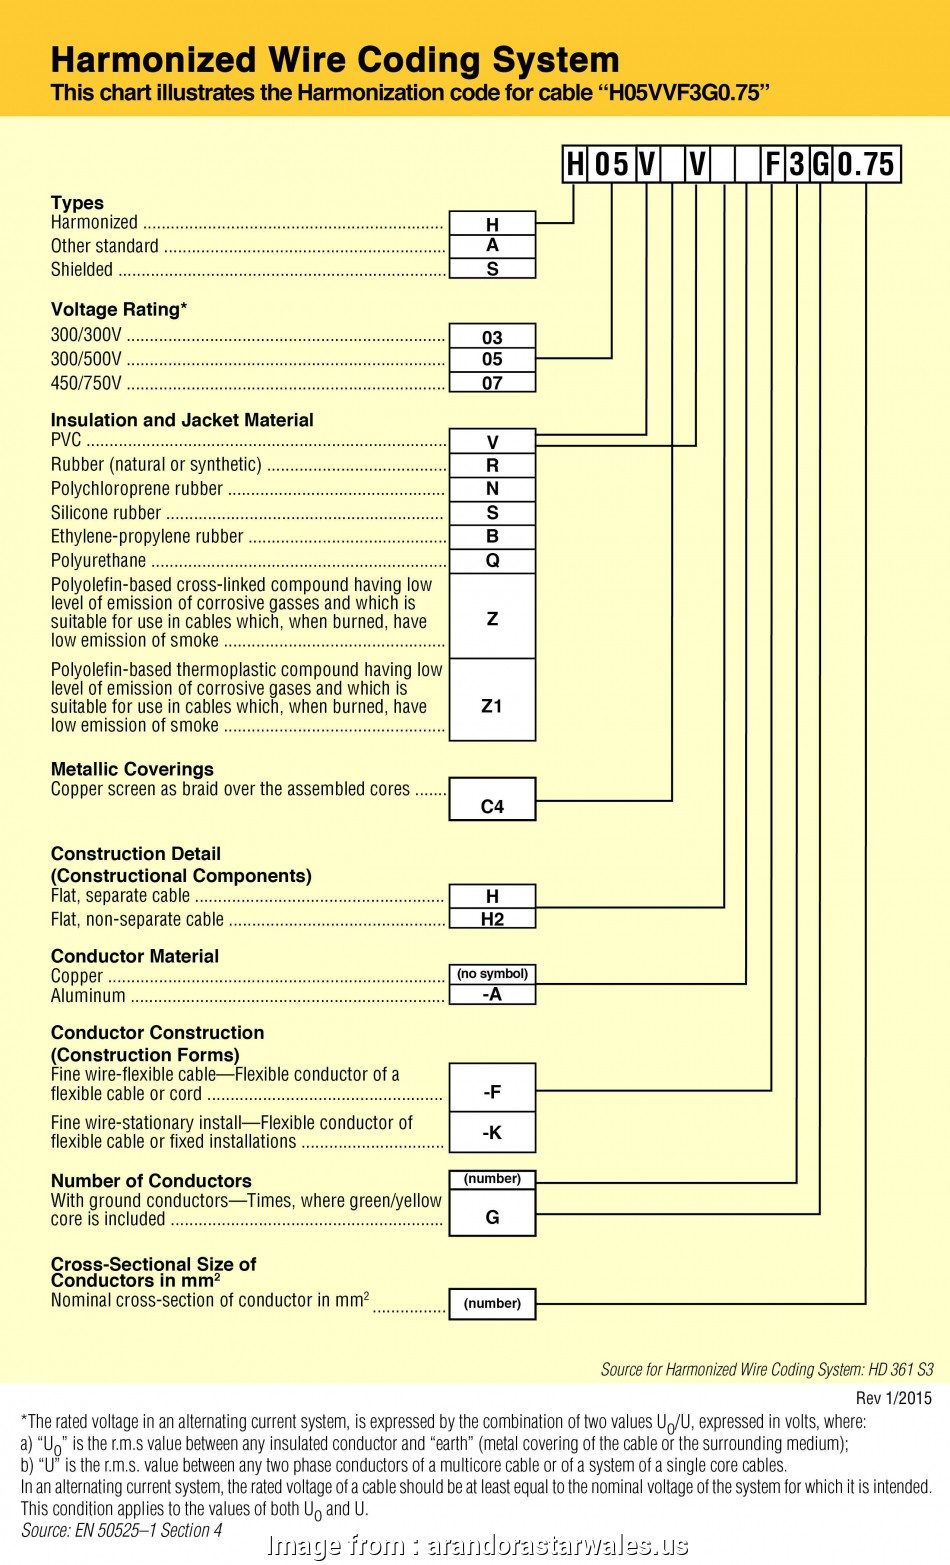 national electric code wire size chart National Electric Code Wire Size Chart Awesome Powercord Reference Linvox Corporation 19 Creative National Electric Code Wire Size Chart Solutions